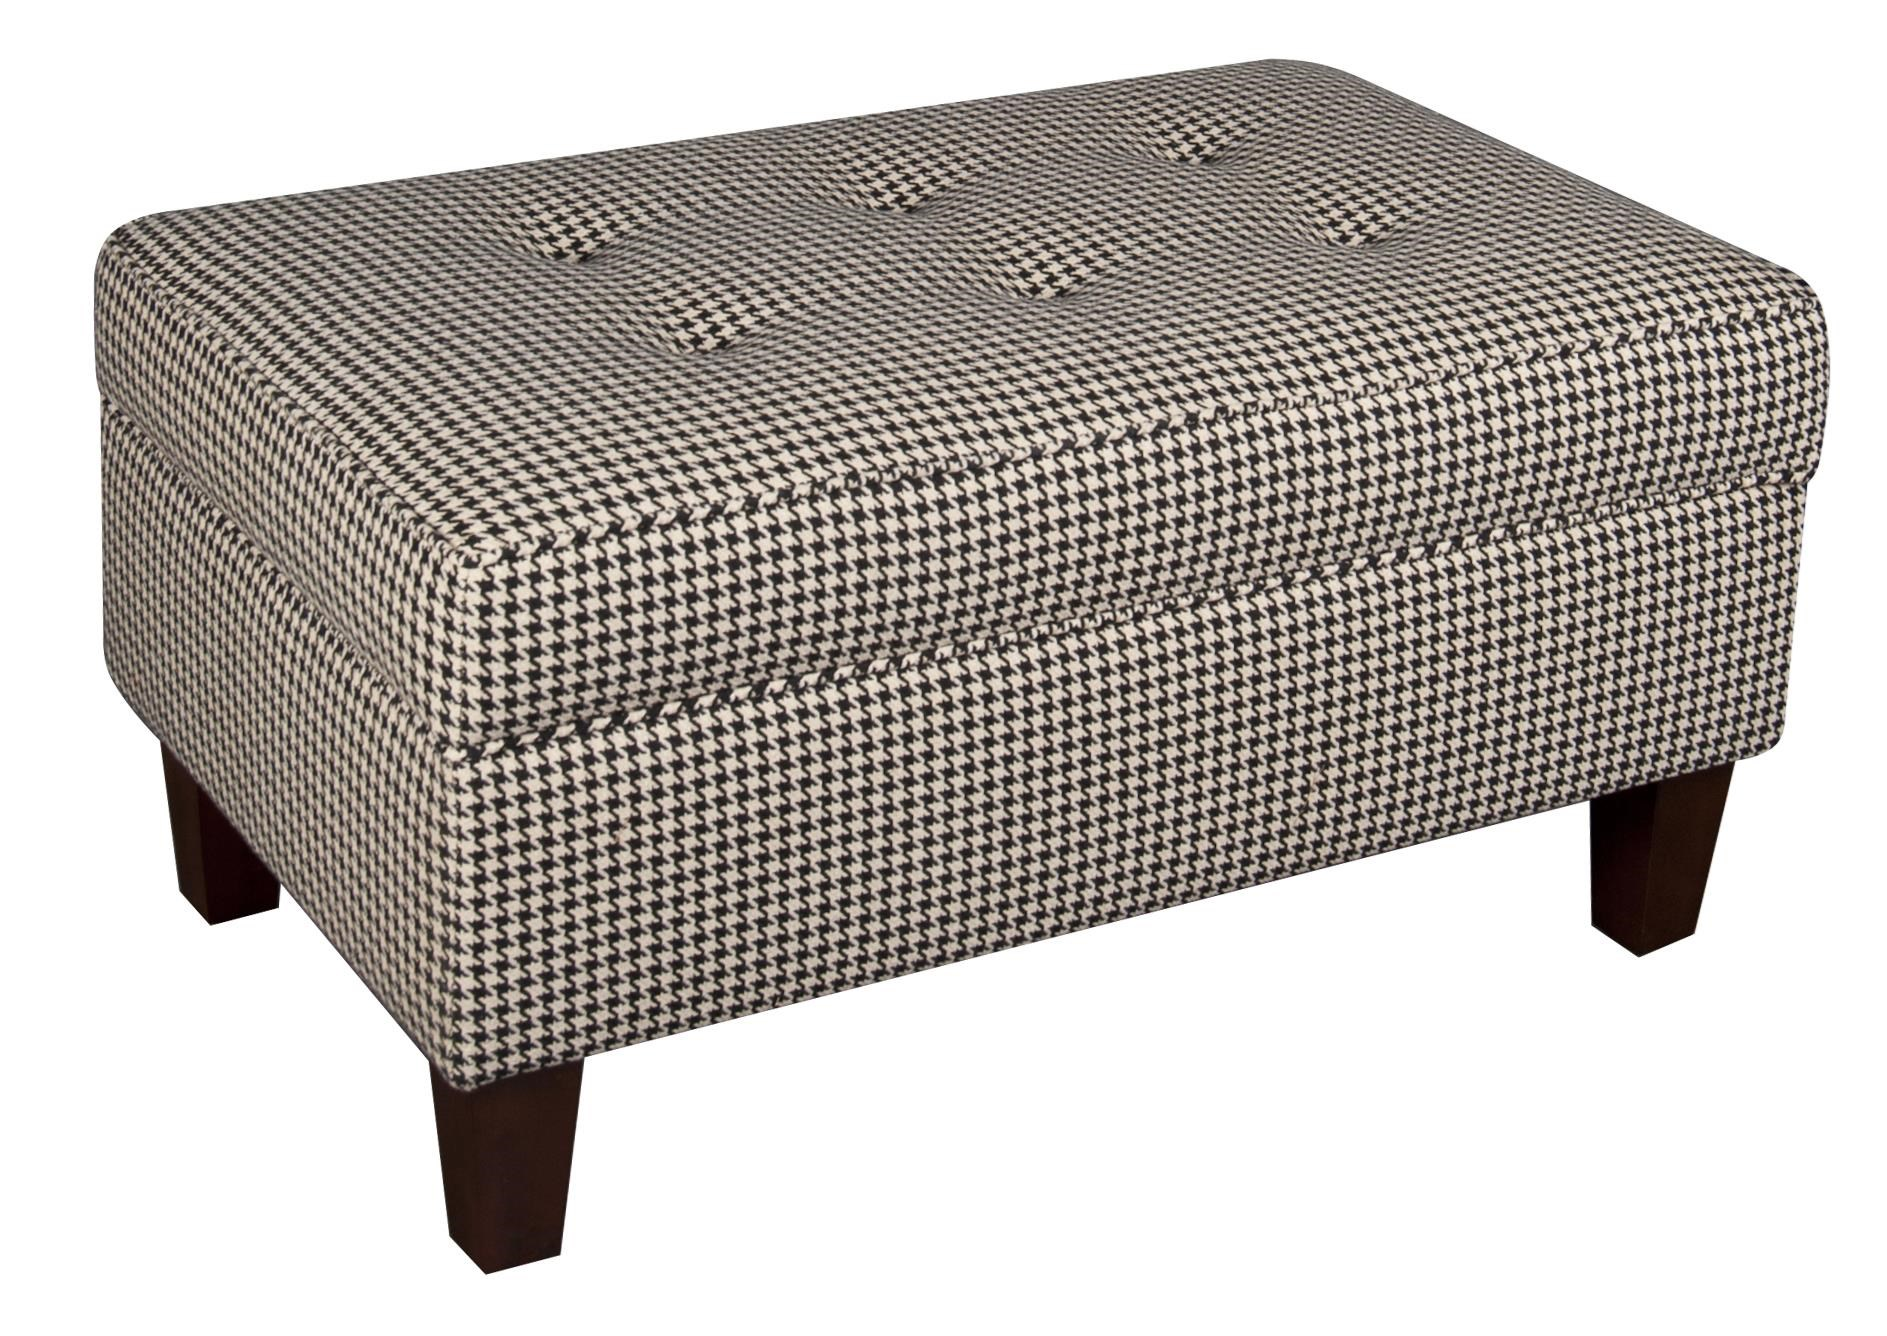 Morris Home Furnishings Sarah Sarah Storage Ottoman - Item Number: 621931867